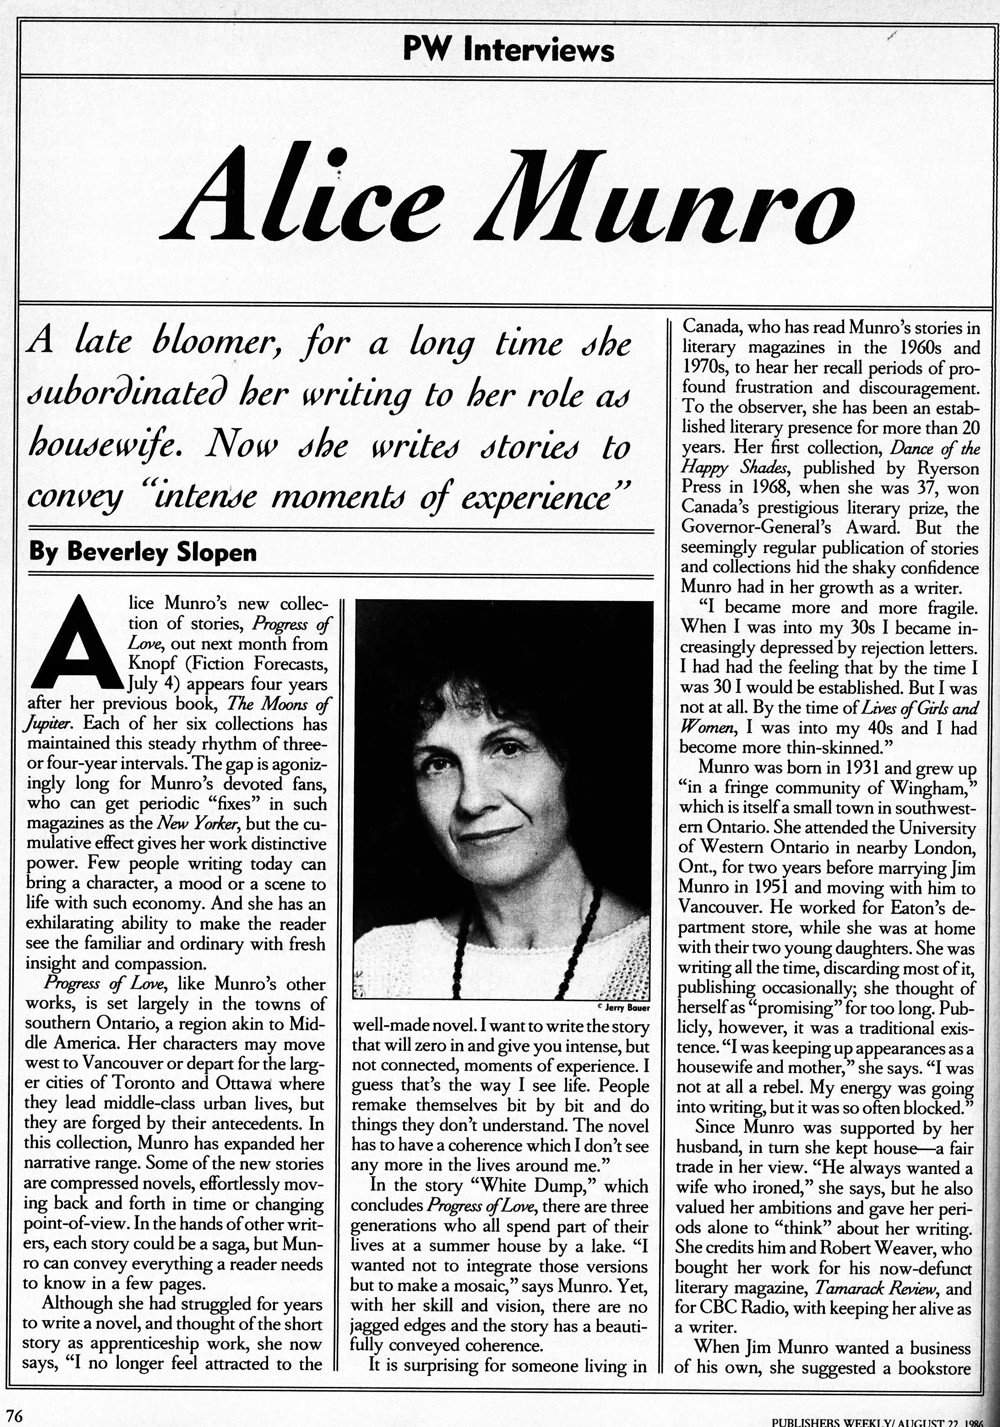 the importance of love in a real life by alice munro Alice munro, who won the nobel prize for literature today, taught me something  important and abiding and true about evil  a young, short-story-loving writer too  enamored of donald barthelme's splashy narrative.